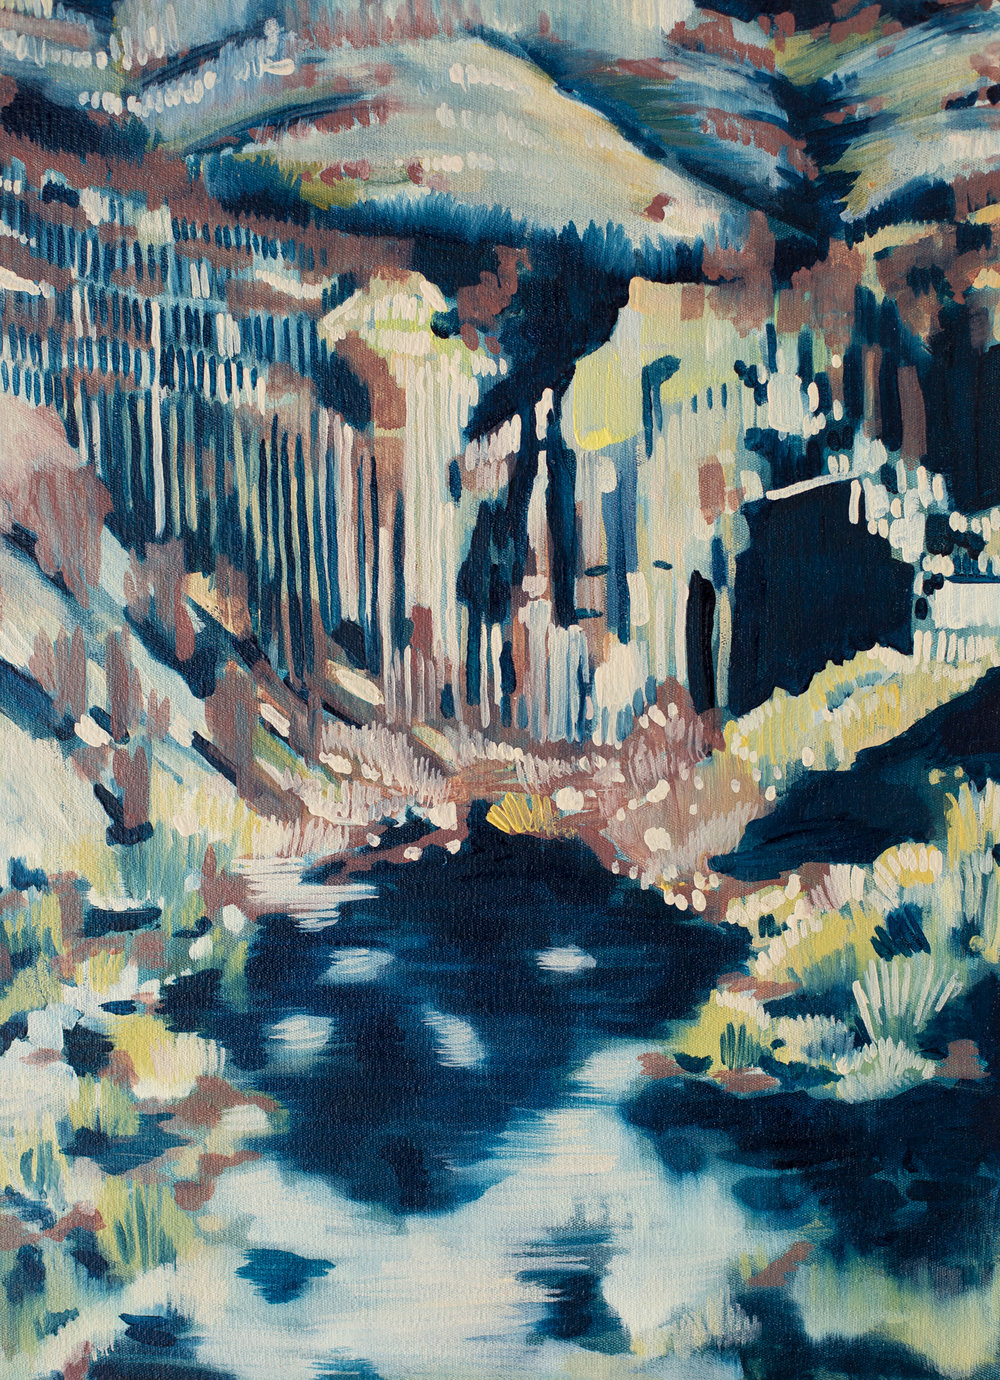 ' Downstream '   Leila Walter  Oil on canvas  400 x 540 x 40 mm  R 4340.00 excl. vat